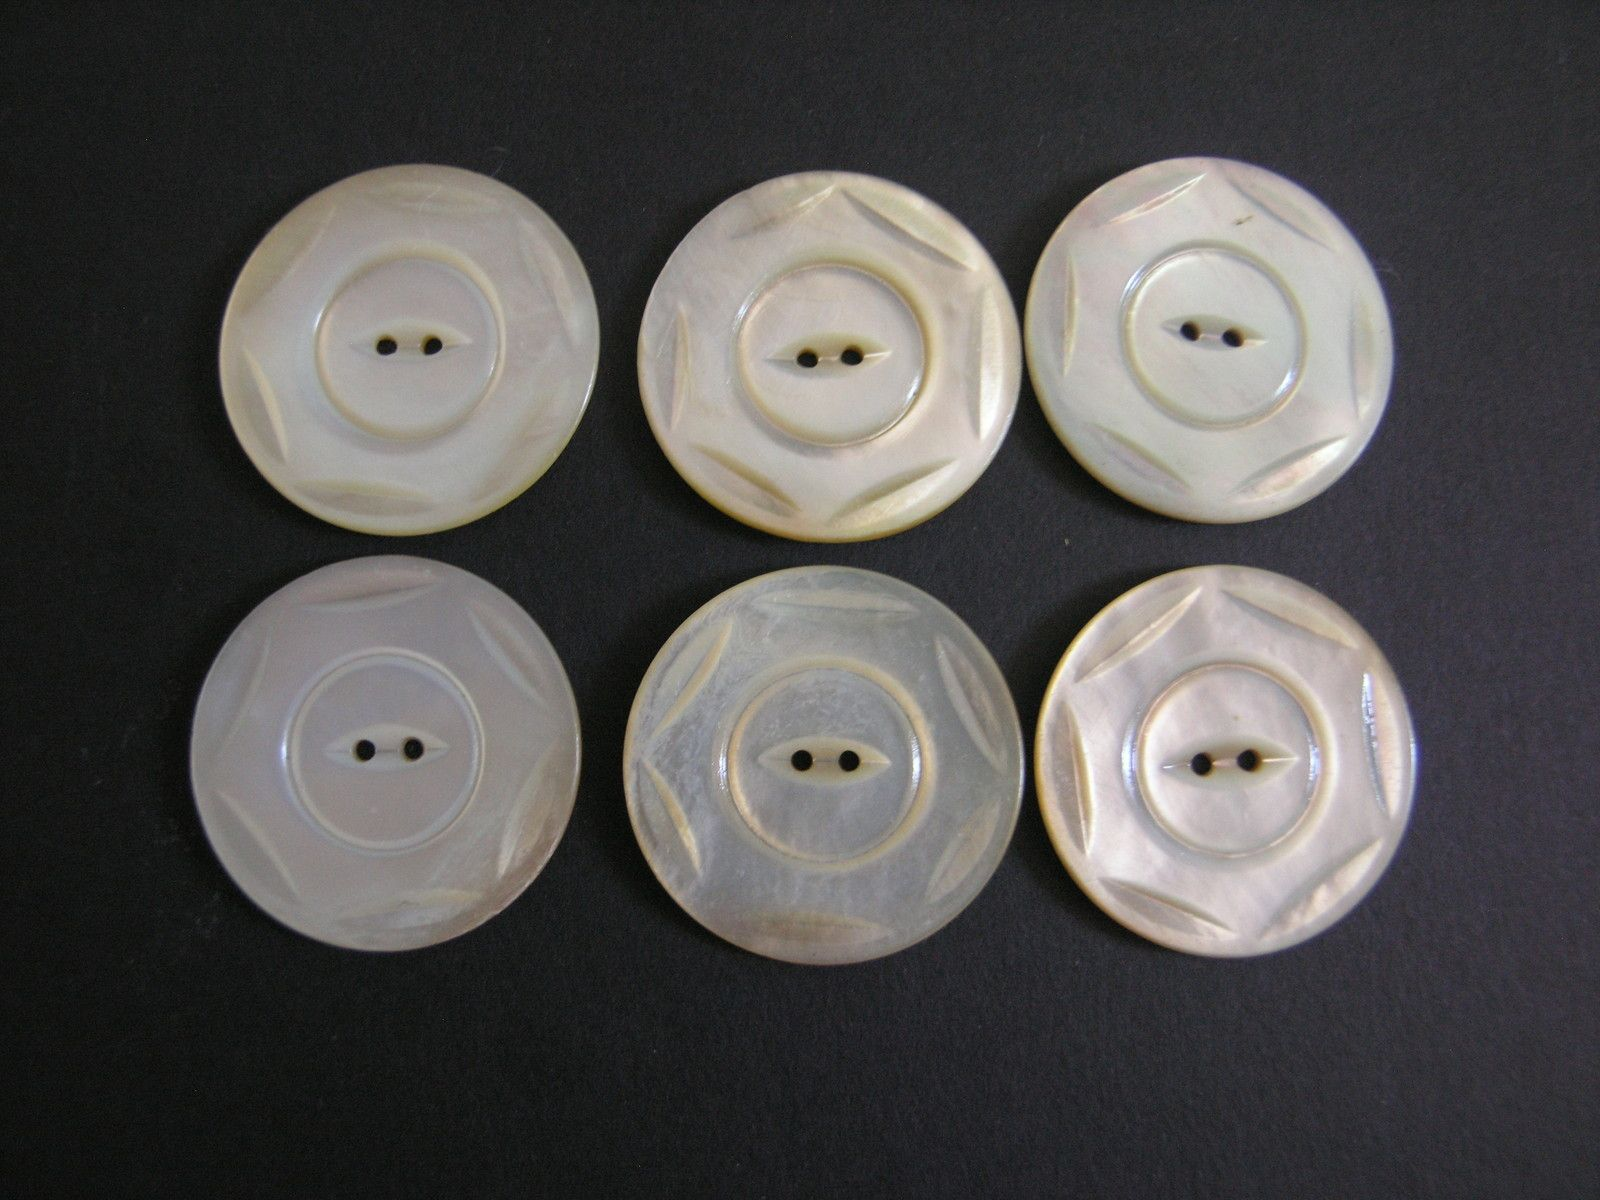 Vintage Set of 6 Pearl Oyster Shell Two Hole Sew Through Buttons from The 1920'S Sold for $7.50 plus s/h